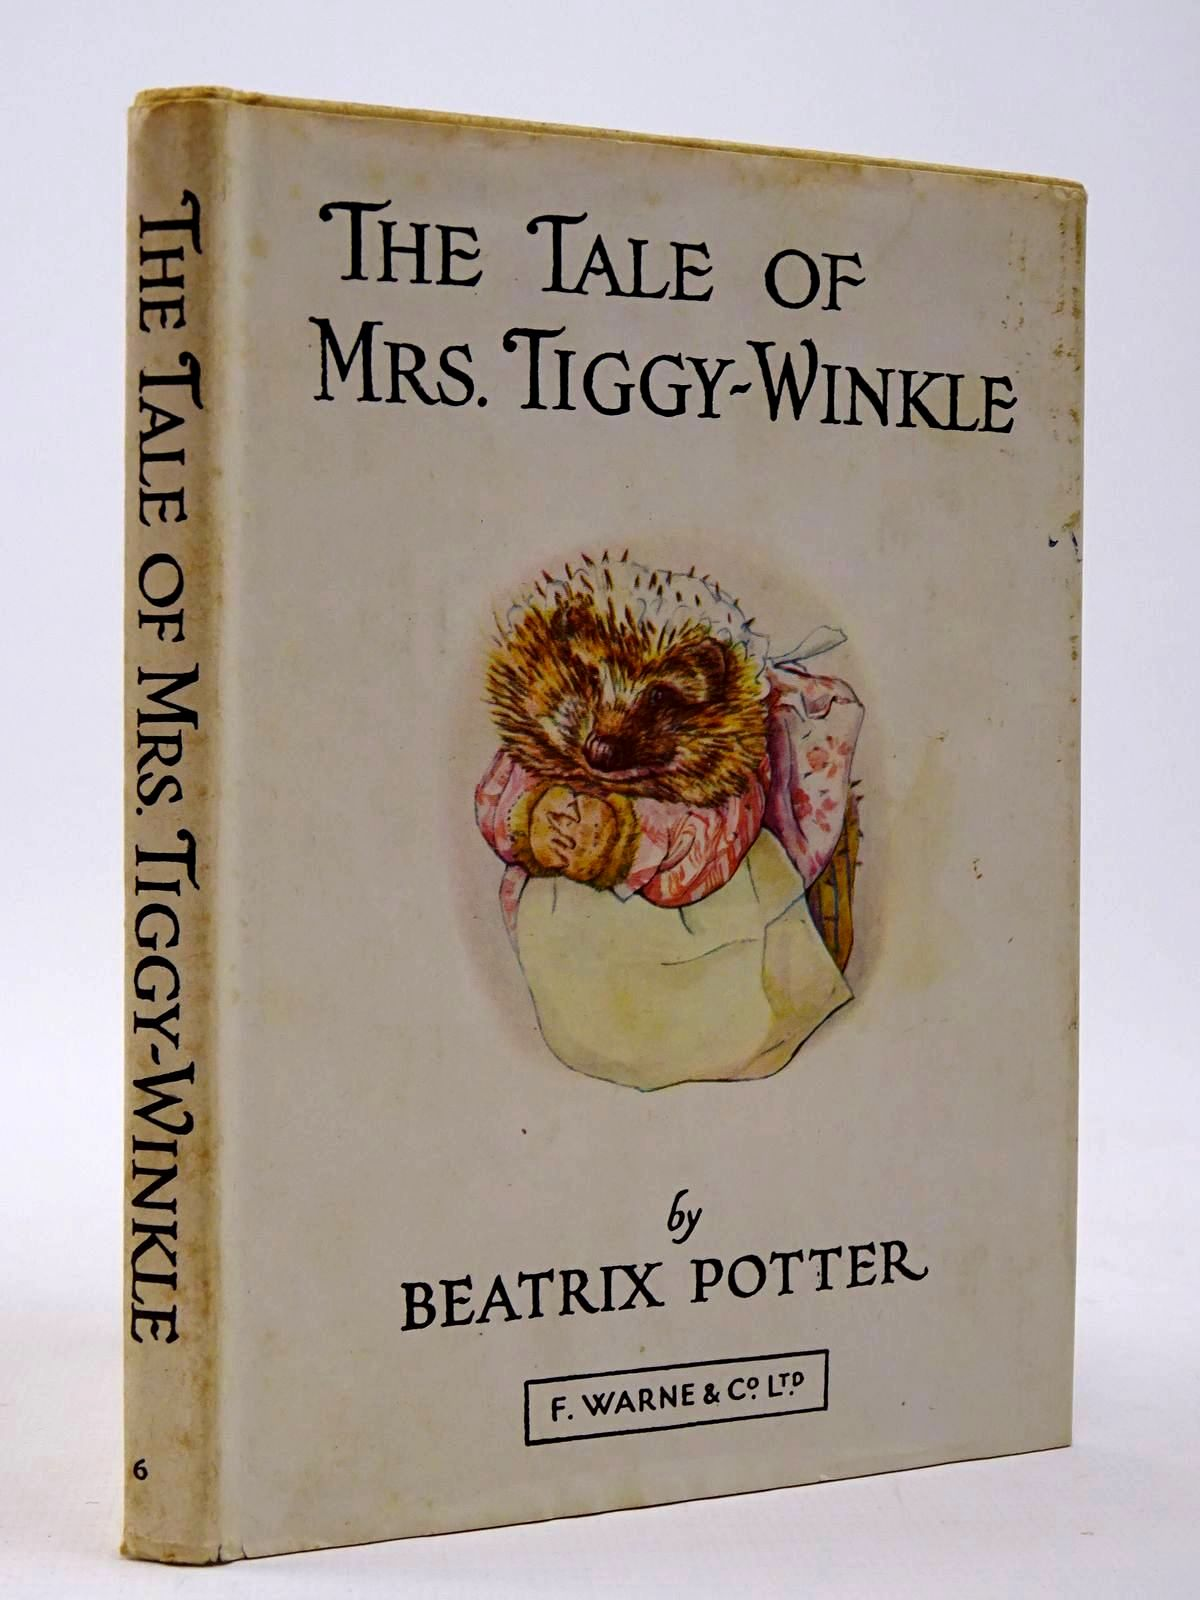 Photo of THE TALE OF MRS. TIGGY-WINKLE written by Potter, Beatrix illustrated by Potter, Beatrix published by Frederick Warne & Co Ltd. (STOCK CODE: 2129988)  for sale by Stella & Rose's Books